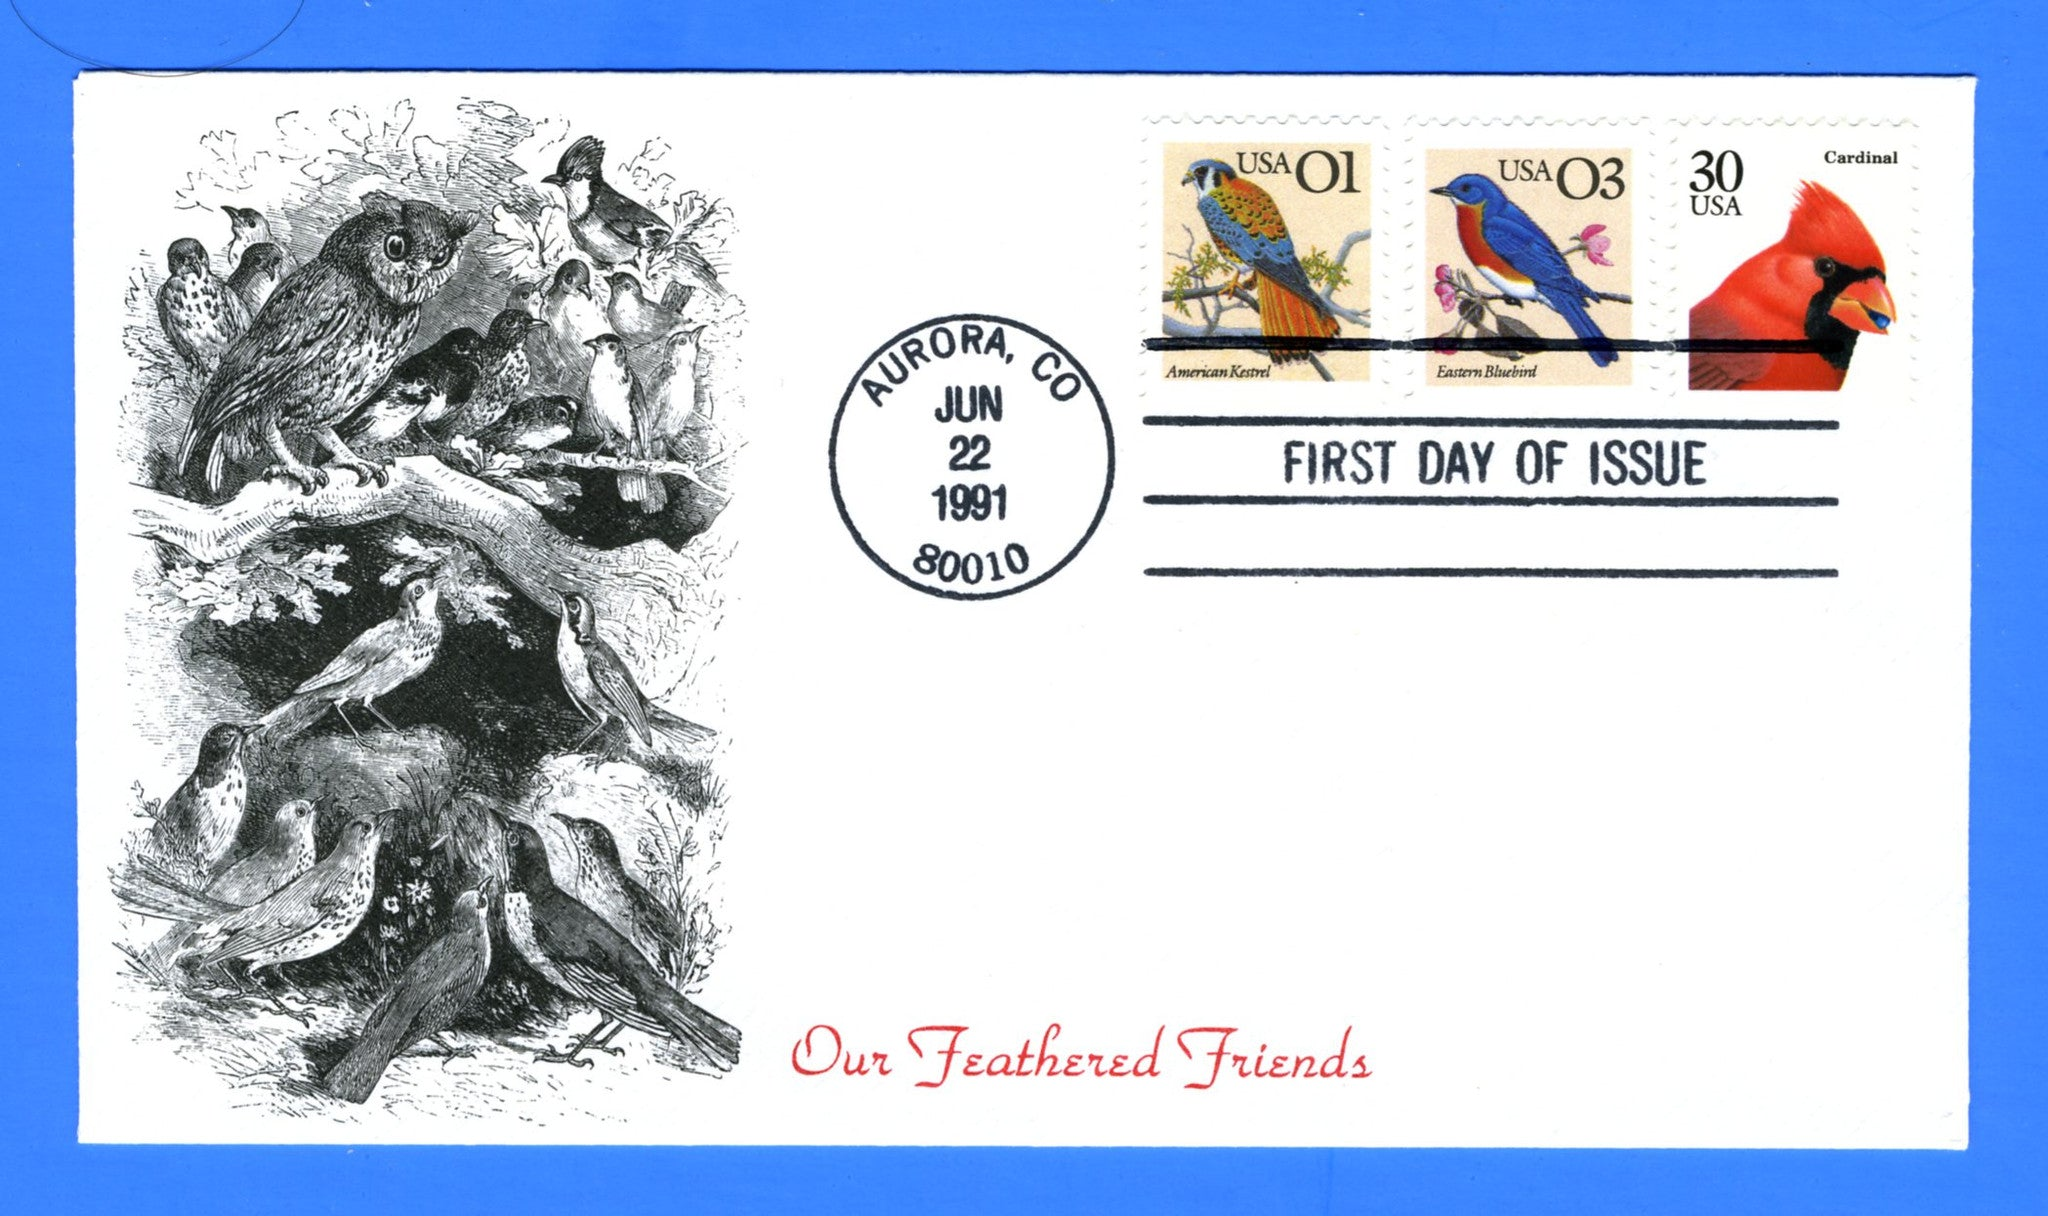 Scott 2240 30c Cardinal, 2476 01c Kestrel, and 2478 03c Eastern Bluebird First Day Cover by KMC Venture for all Three Issues